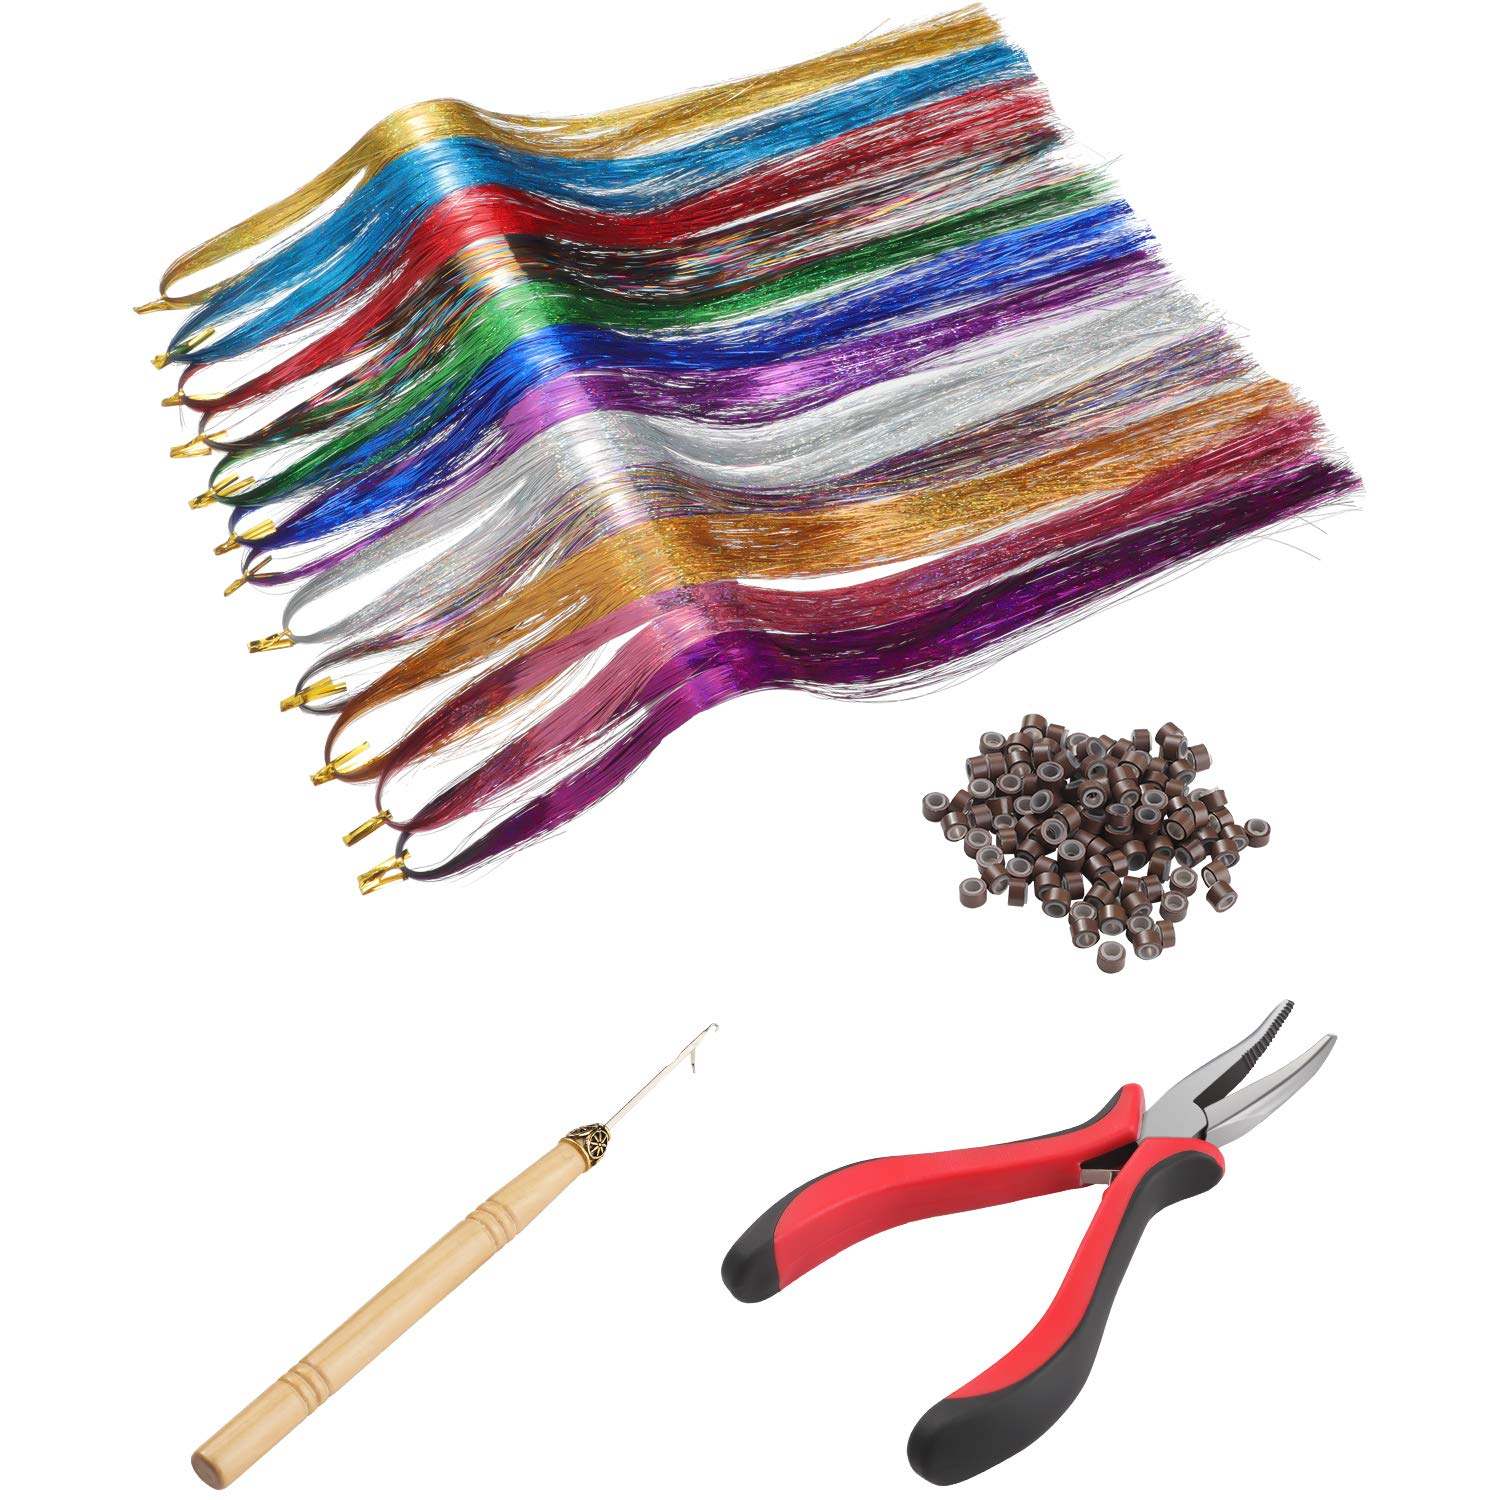 Hair Tinsel Kit With Tools, 2400 Strands Shiny Hair Tinsel Extensions Colorful Synthetic Straight Hairpieces for Women Girls, 12 Colors by WILLBOND